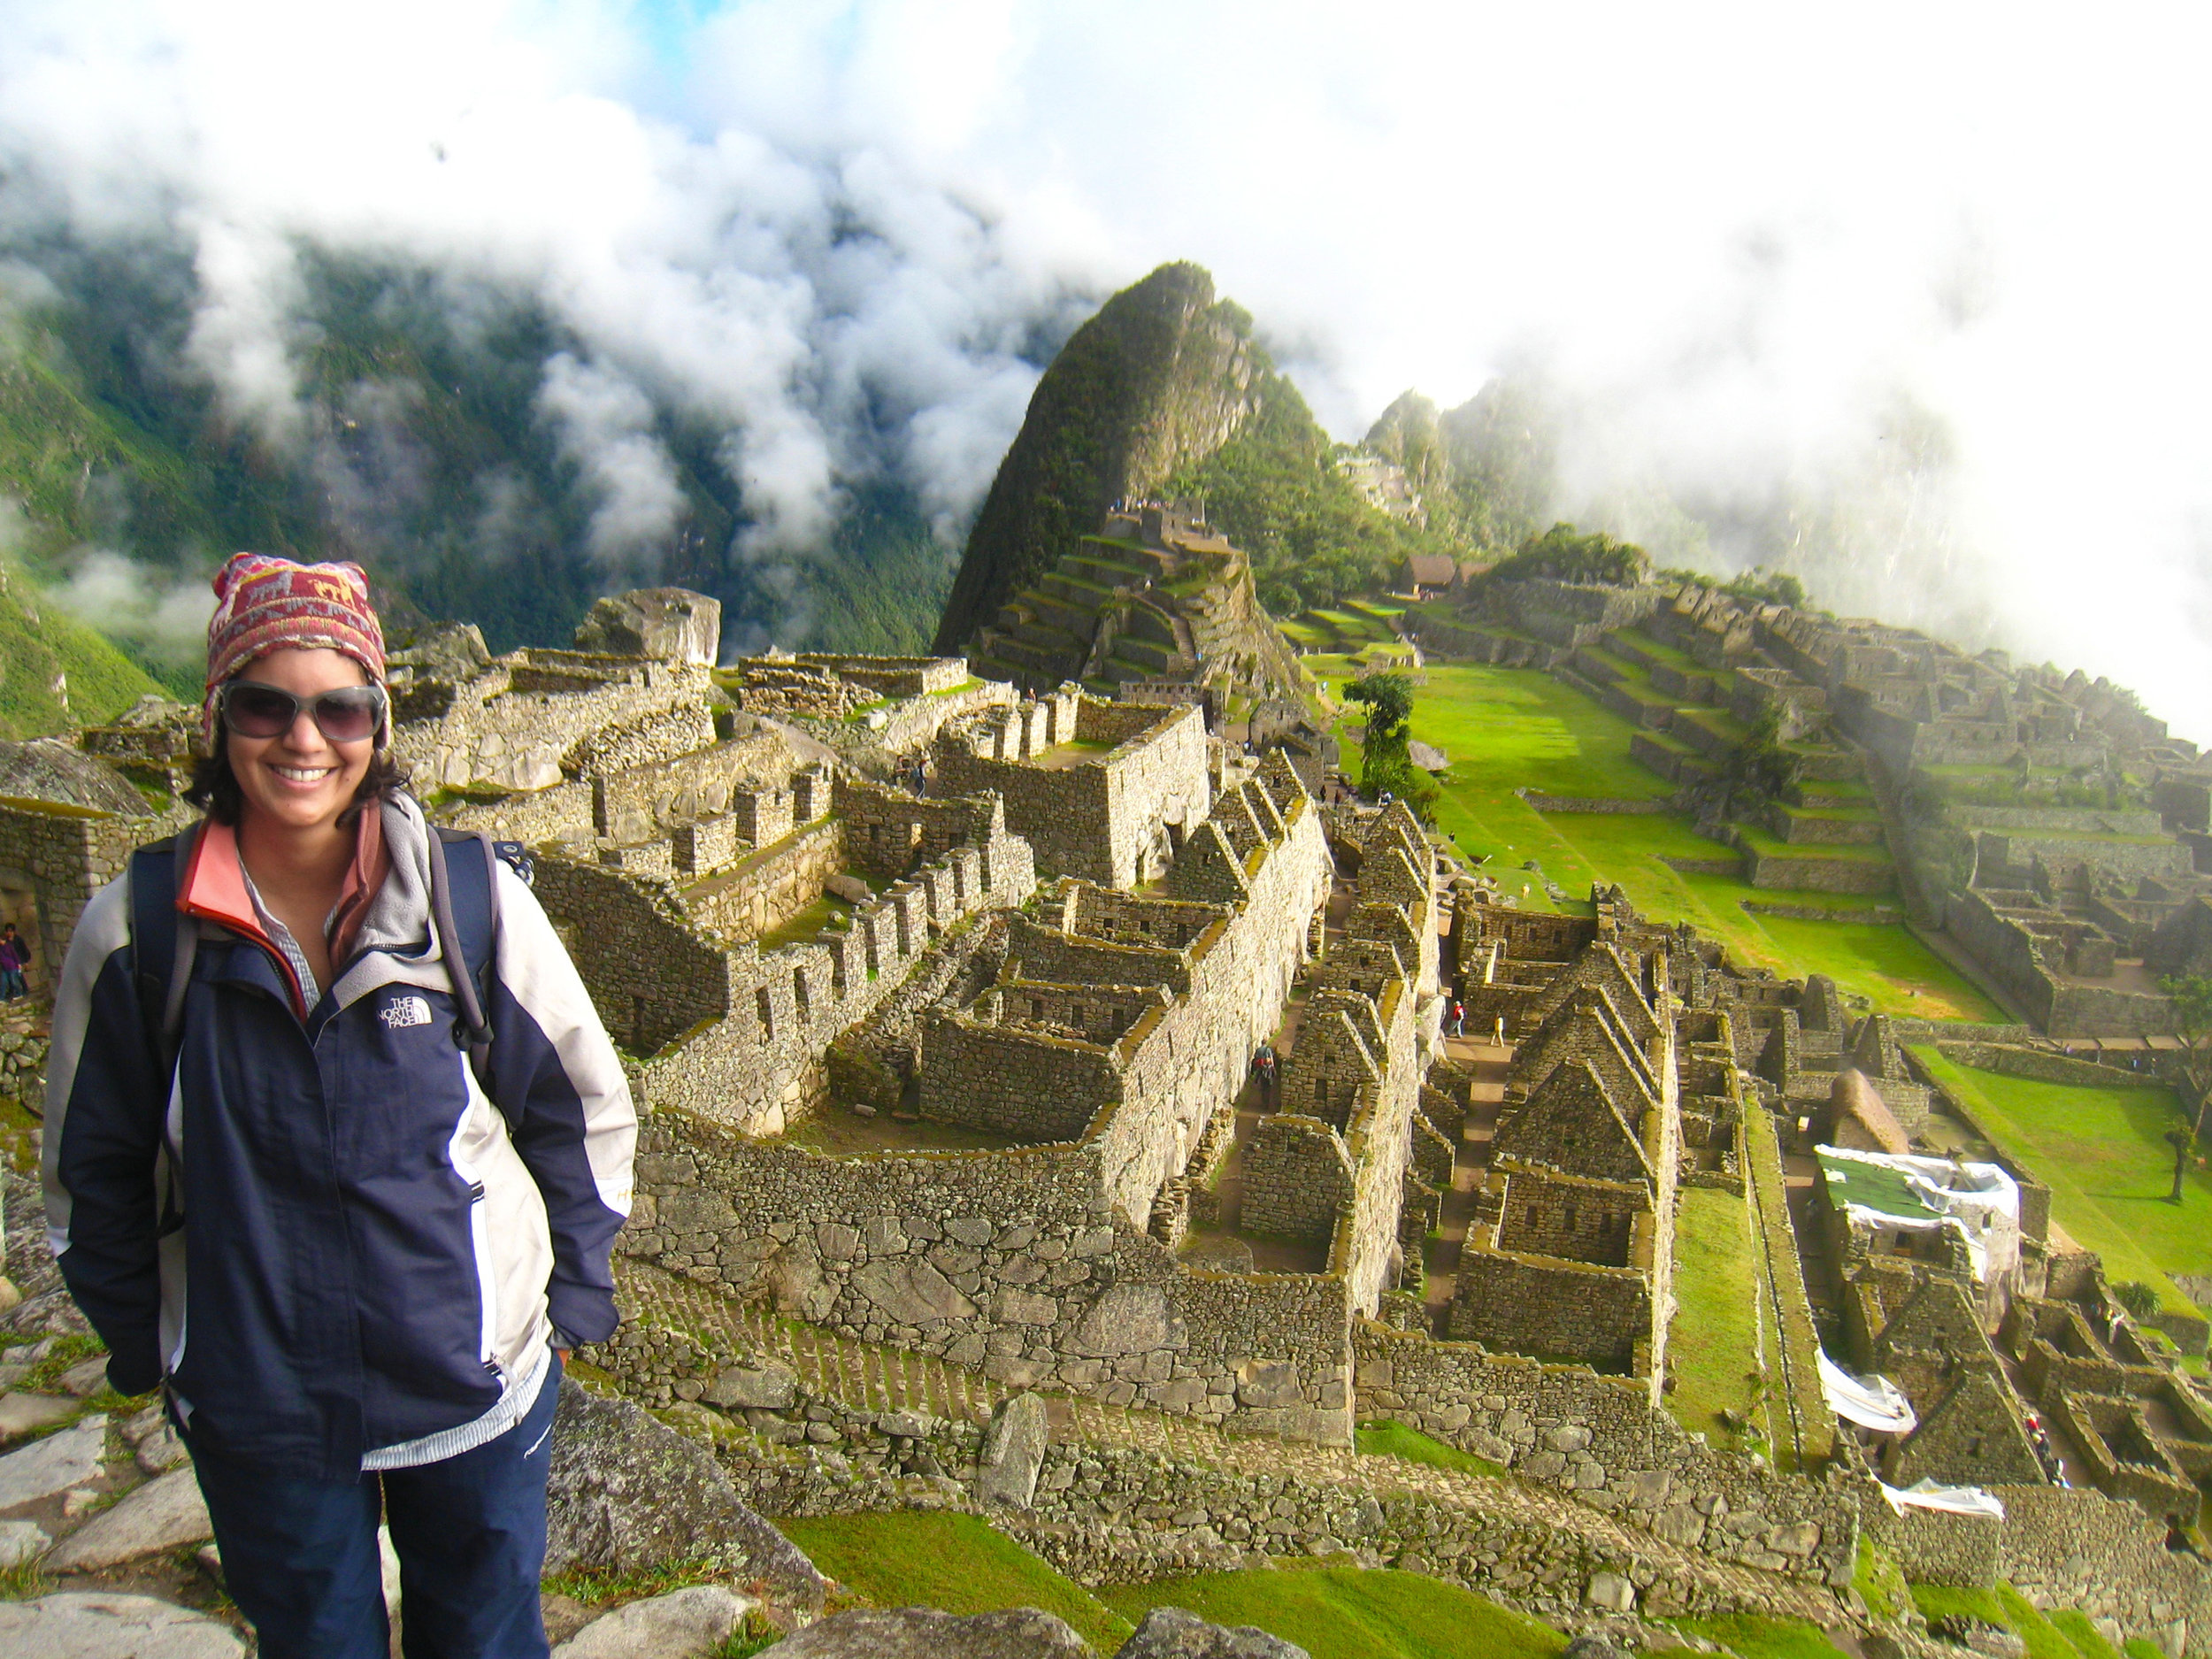 Hiking to the top of Machu Picchu, Peru.